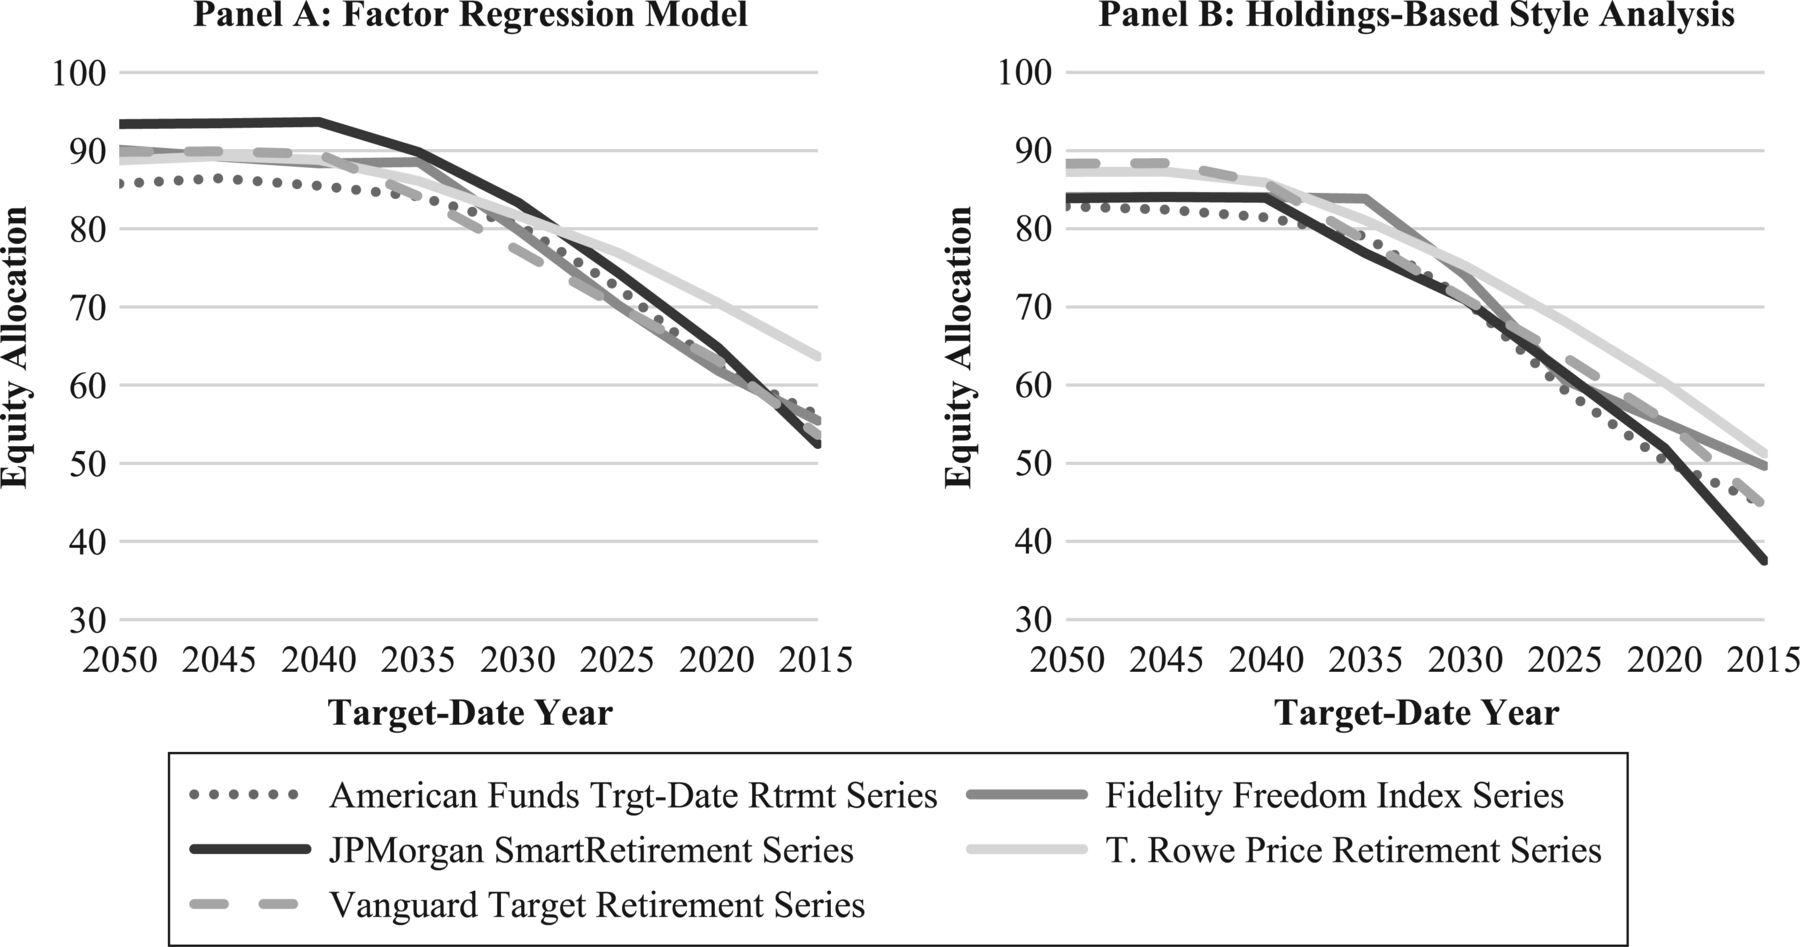 Beyond the Glide Path: The Drivers of Target-Date Fund